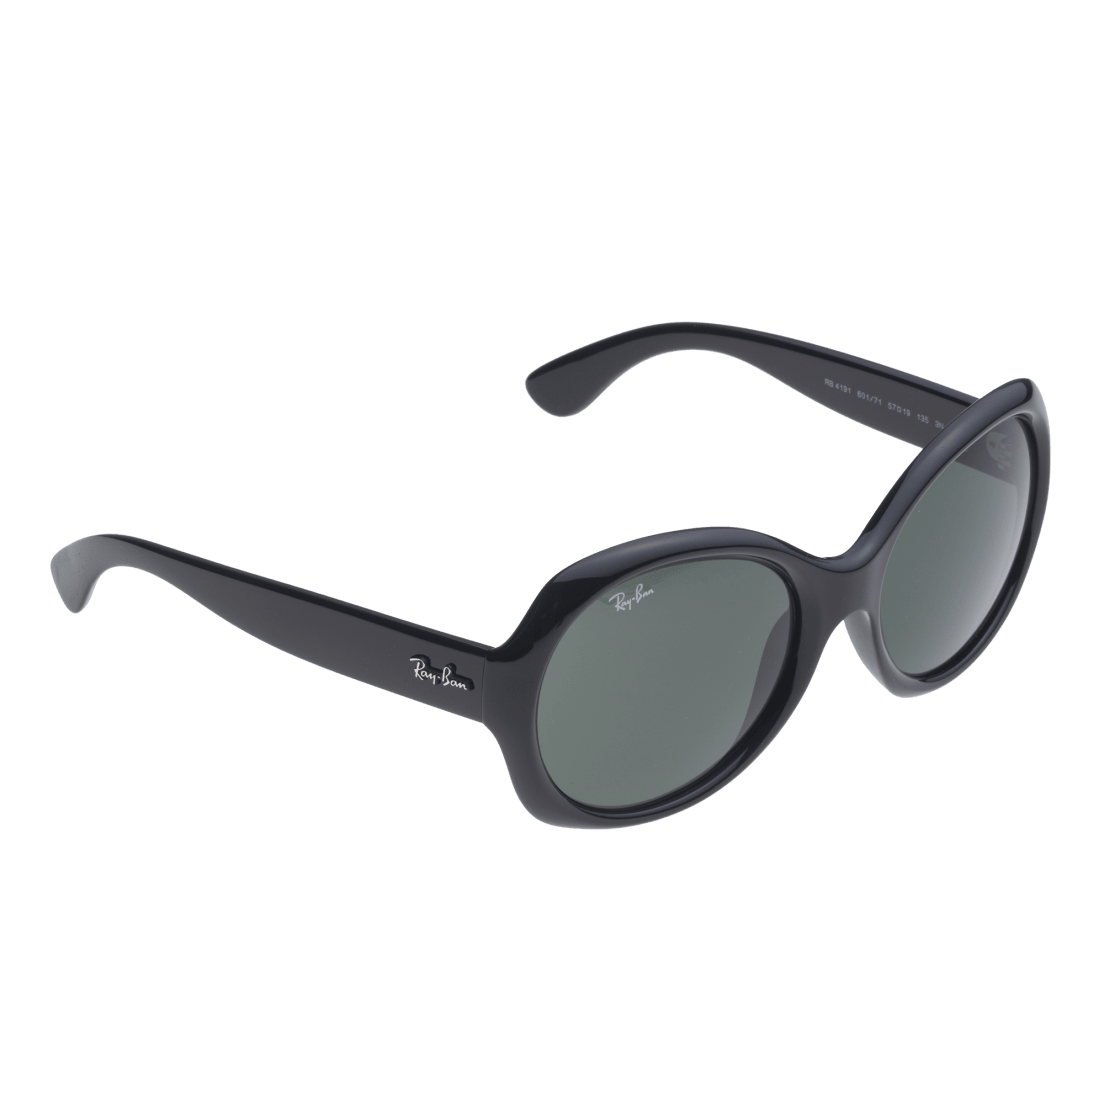 c74b99545 Ray-Ban RB4191 Sunglasses with Black Frame & Green Classic Lenses